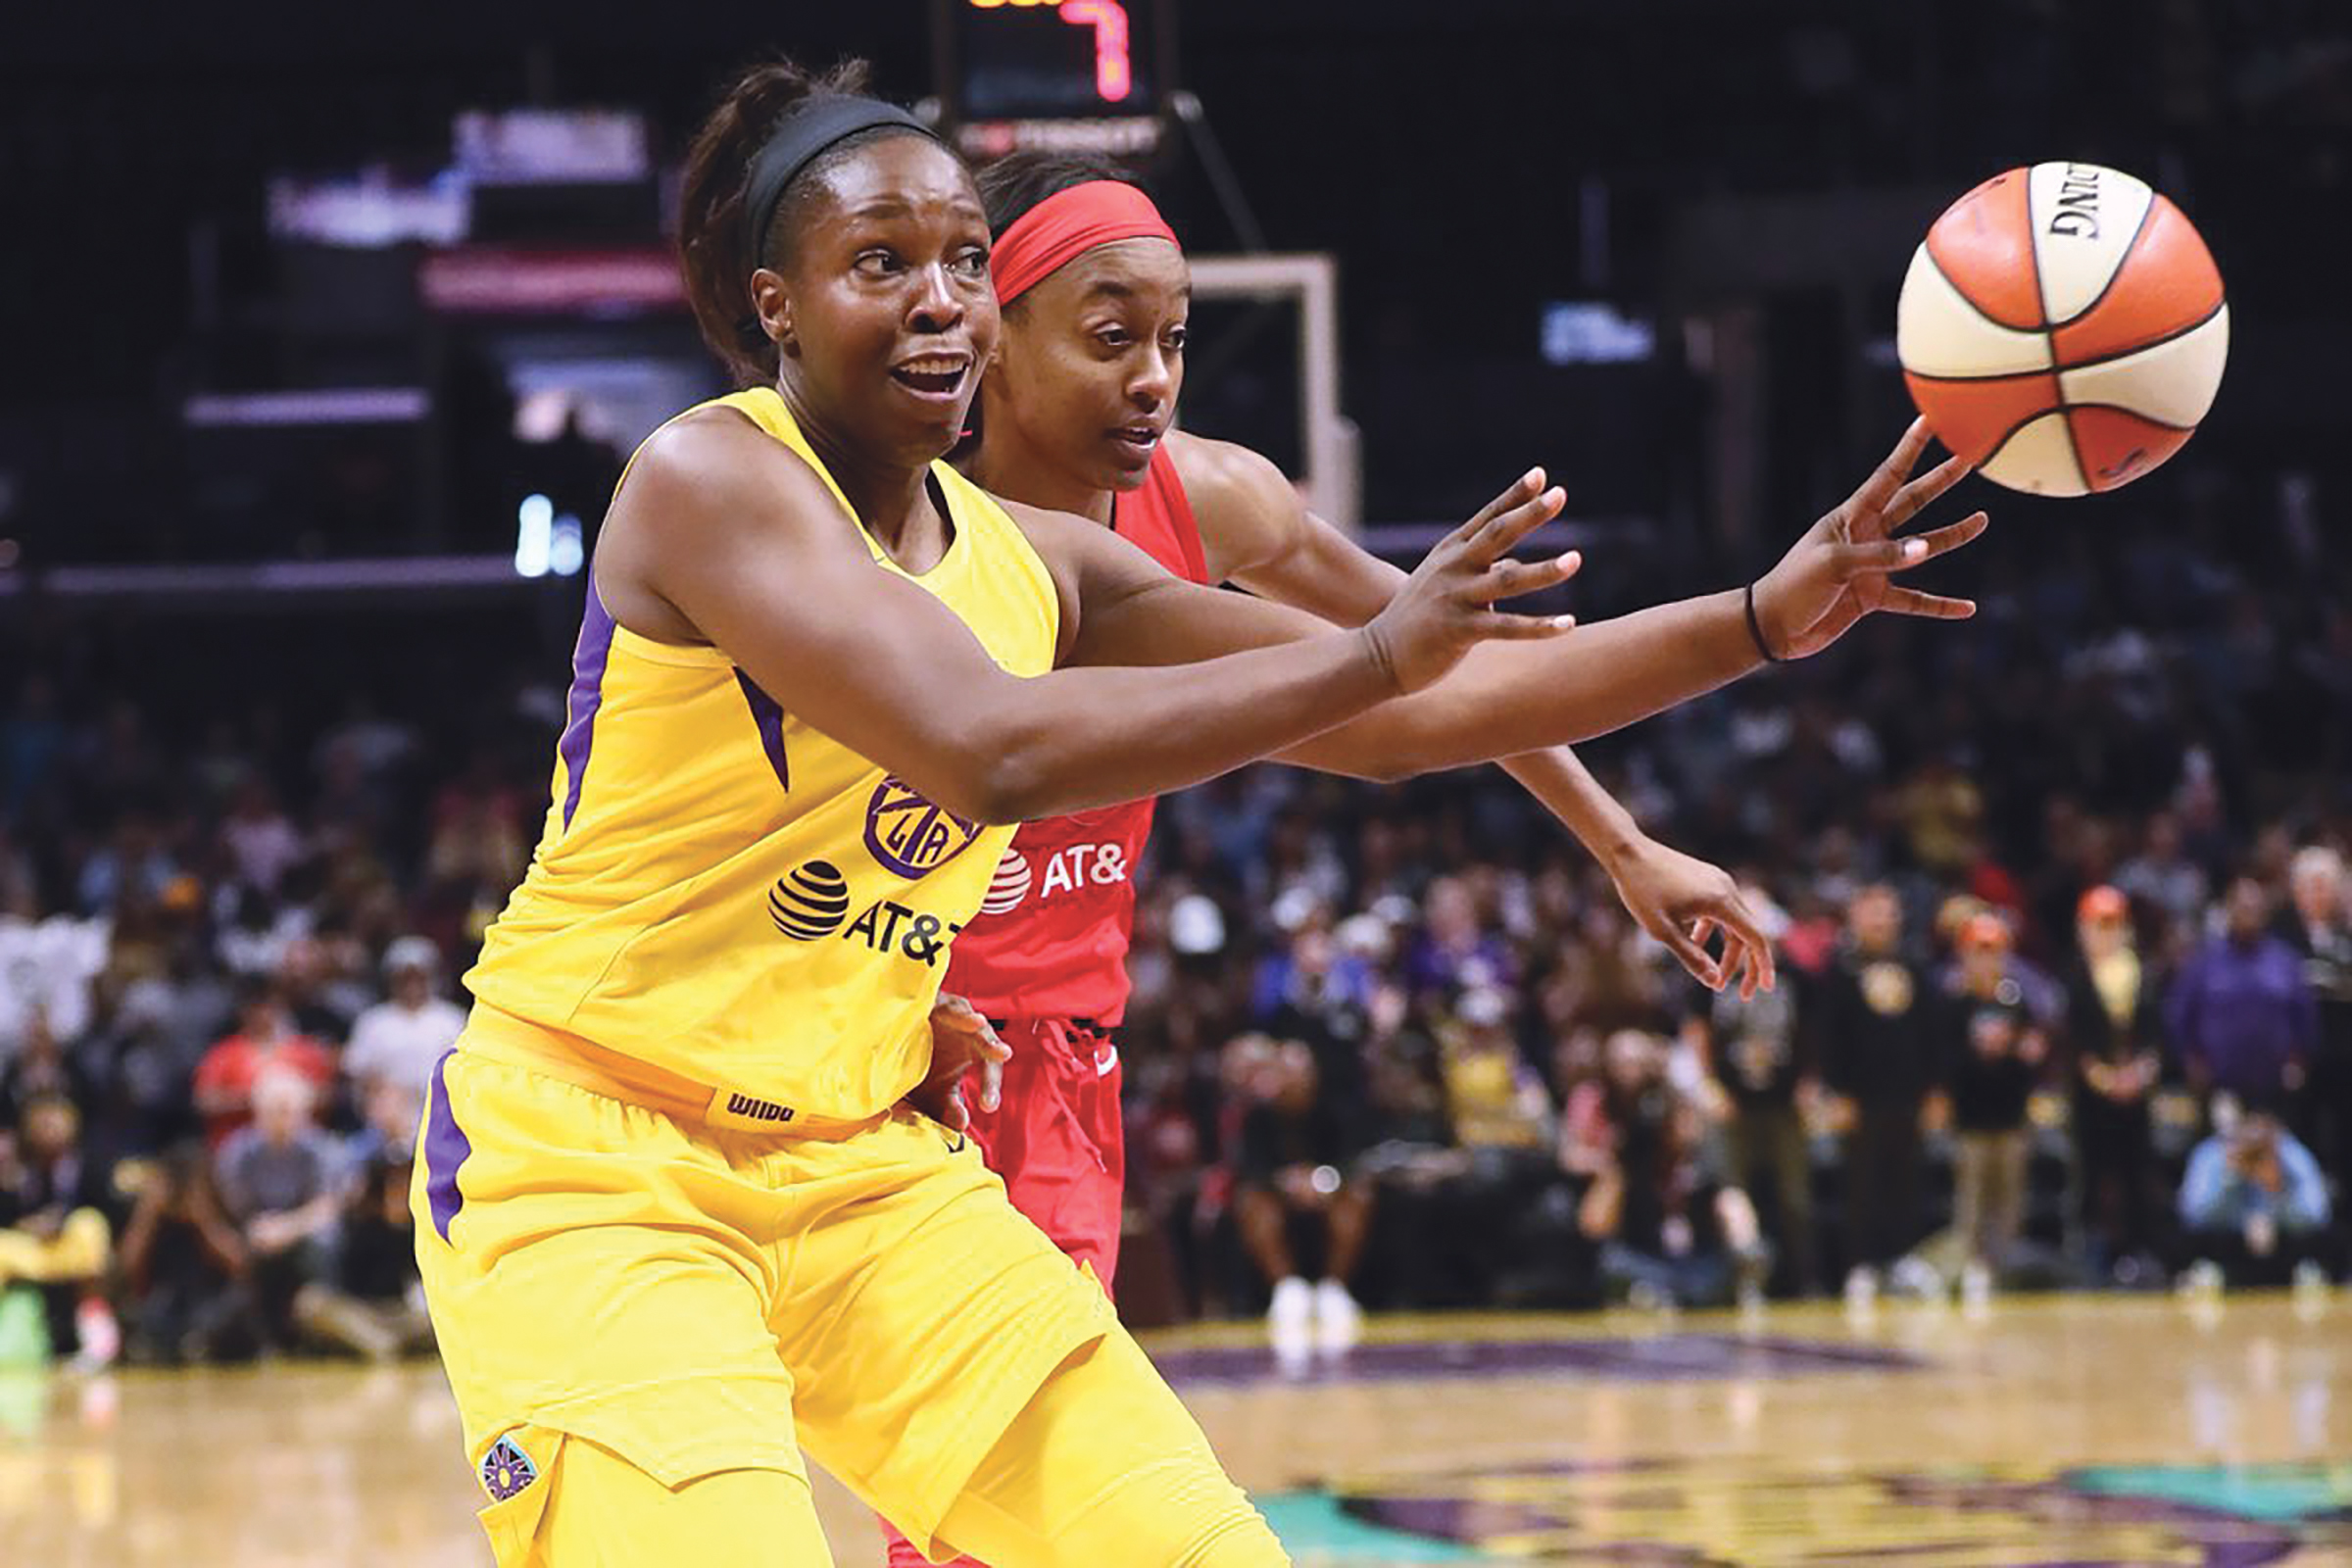 Chelsea Gray tosses one of her 13 assists on her way to a triple-double in the Sparks win over the Mystics. (Photo by Leon Bennett/Getty Images)